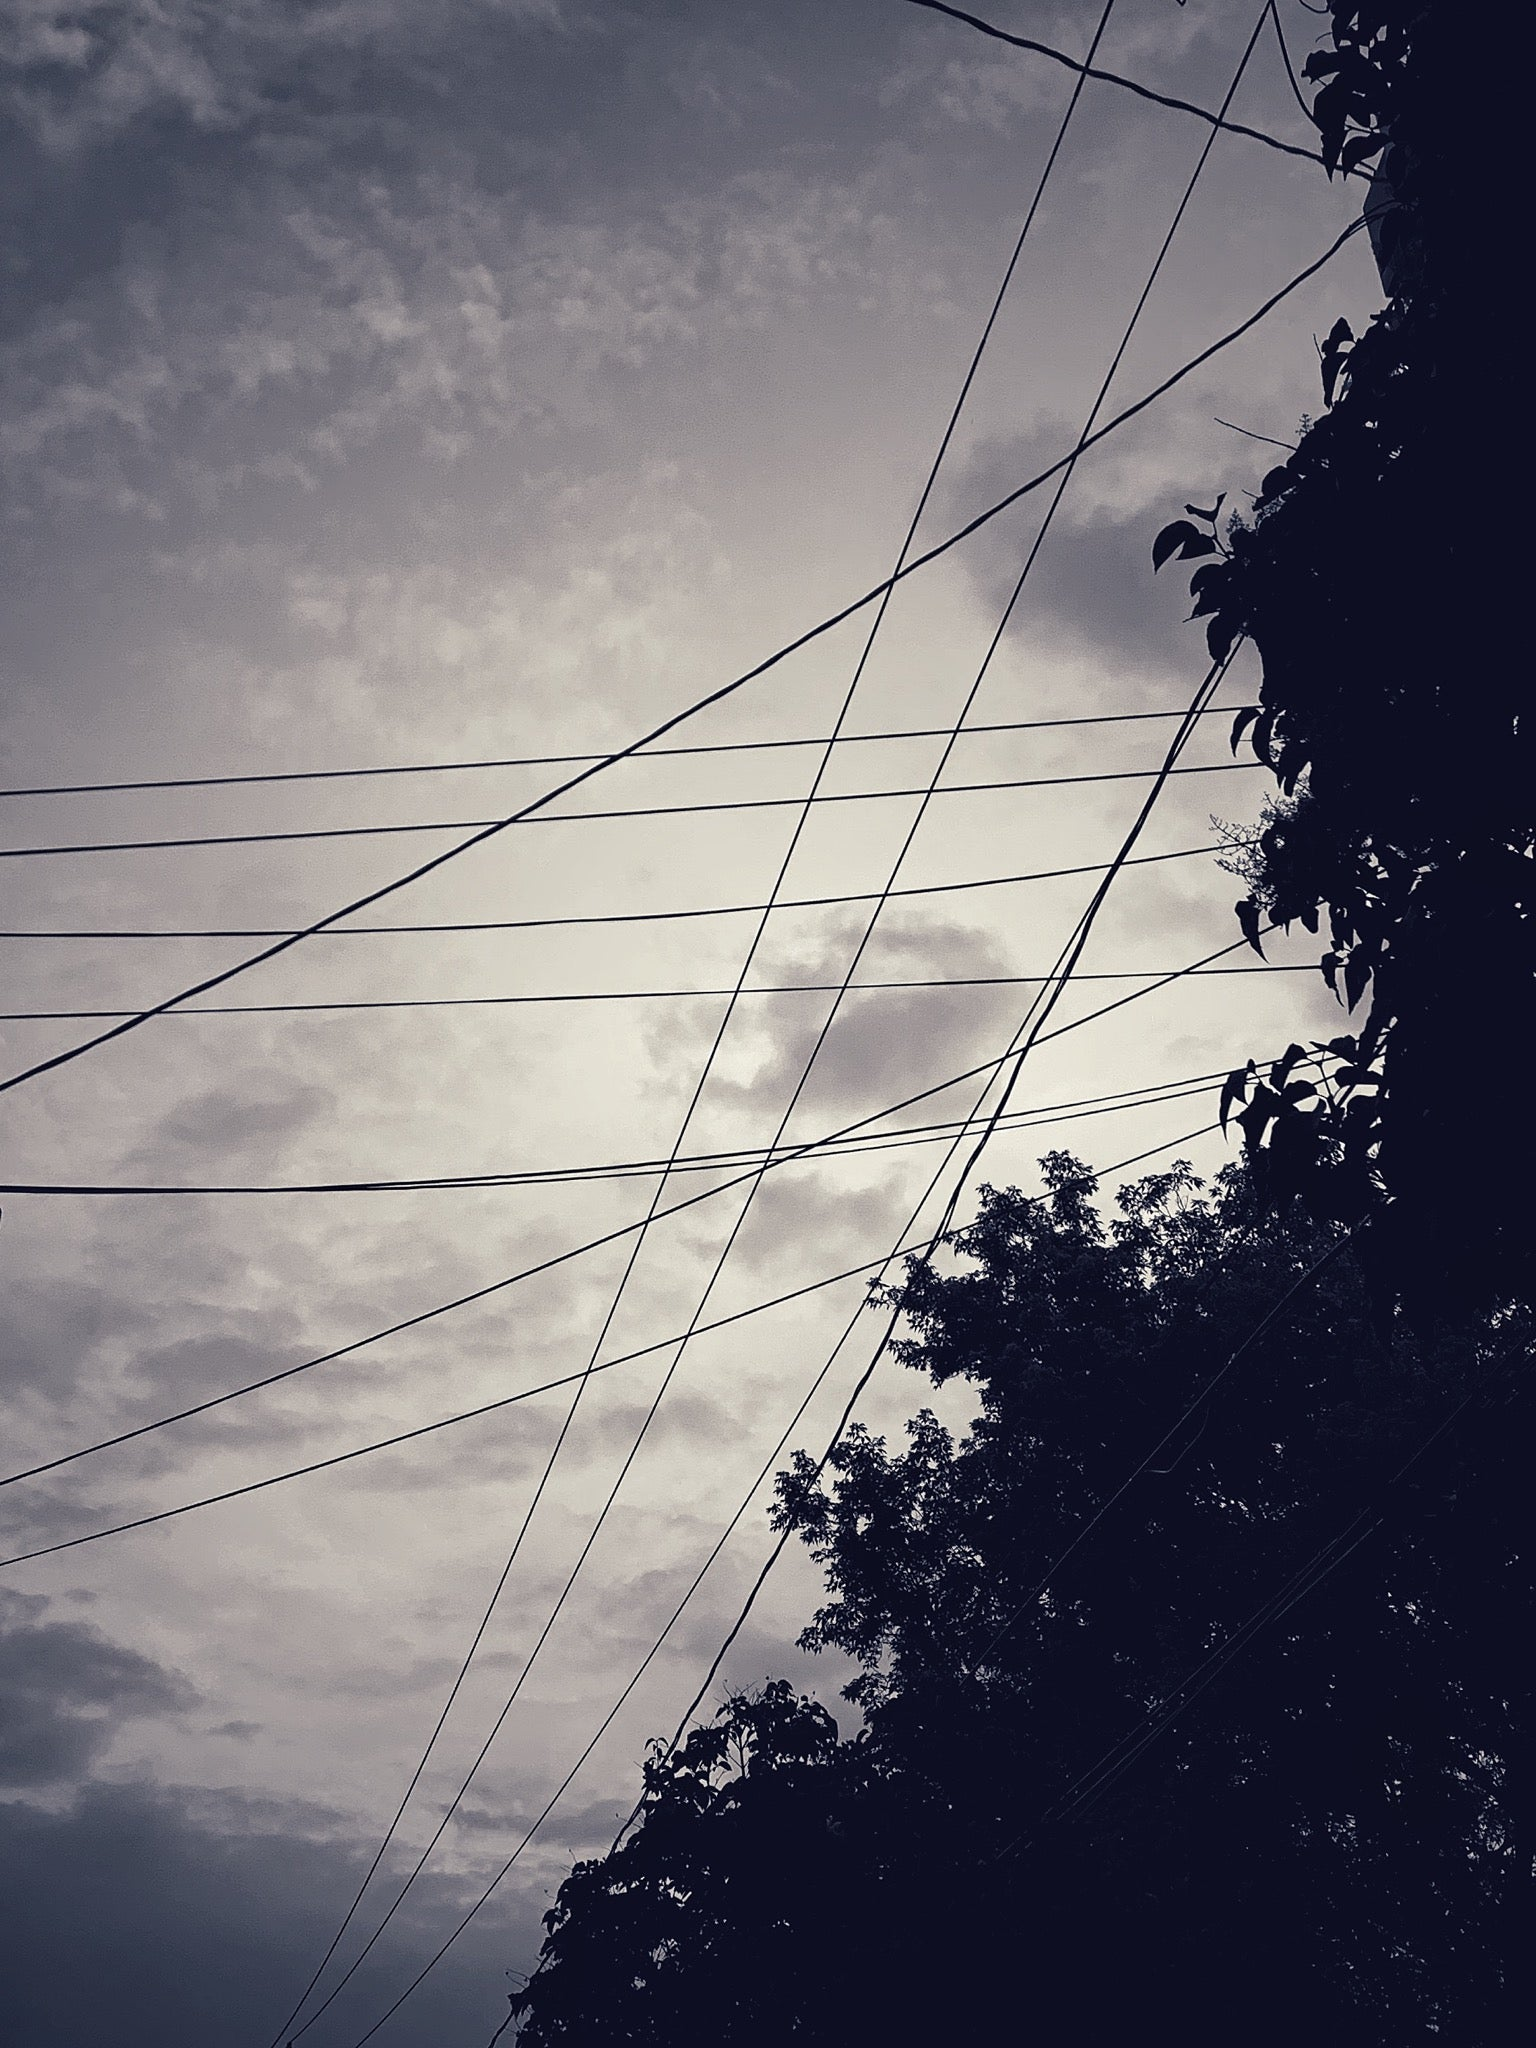 A multitude of electric lines and cables crossing in every direction